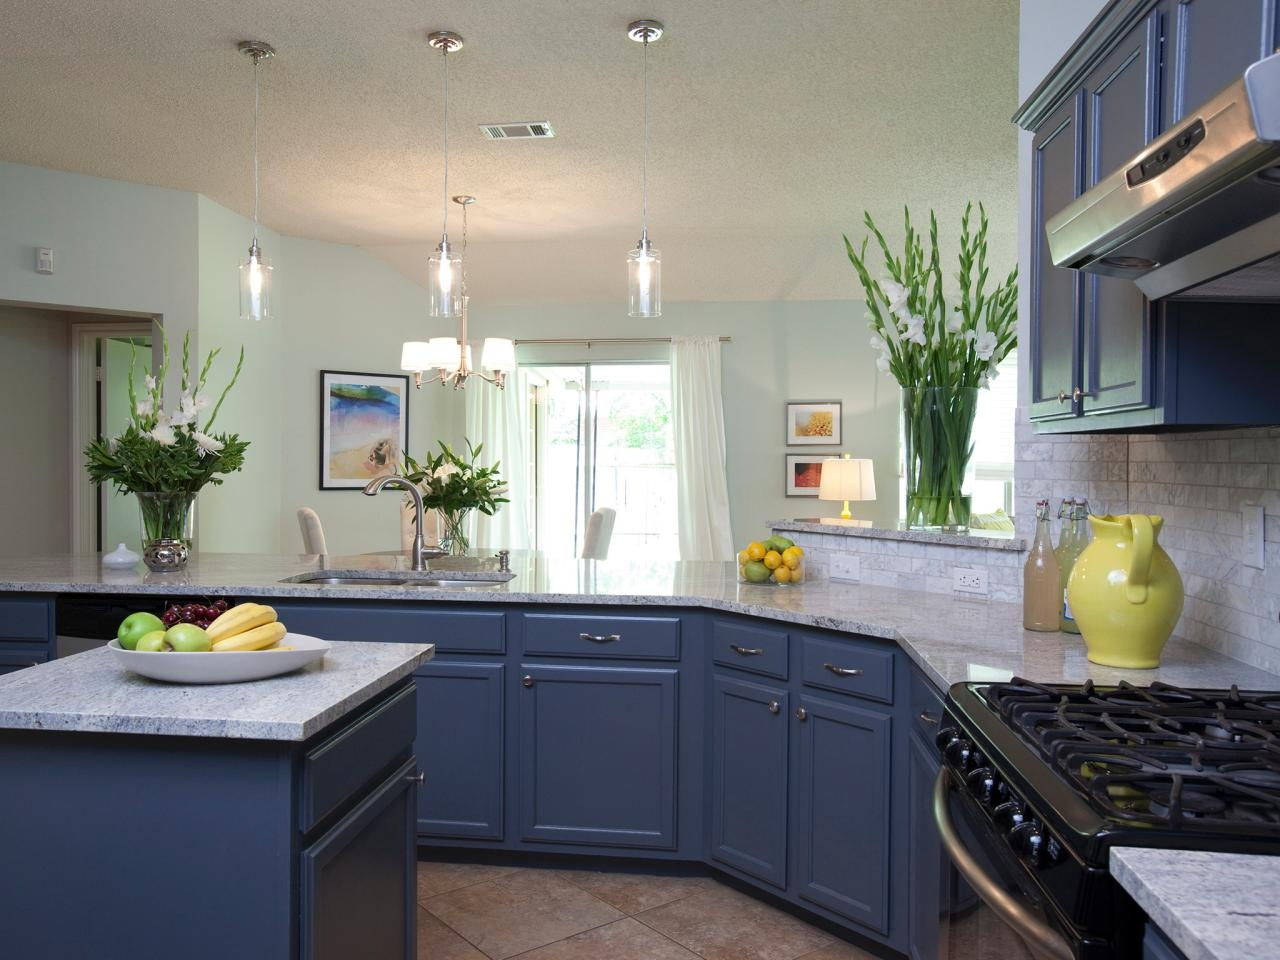 paint it blue: combining colour ideas for your simple kitchen with